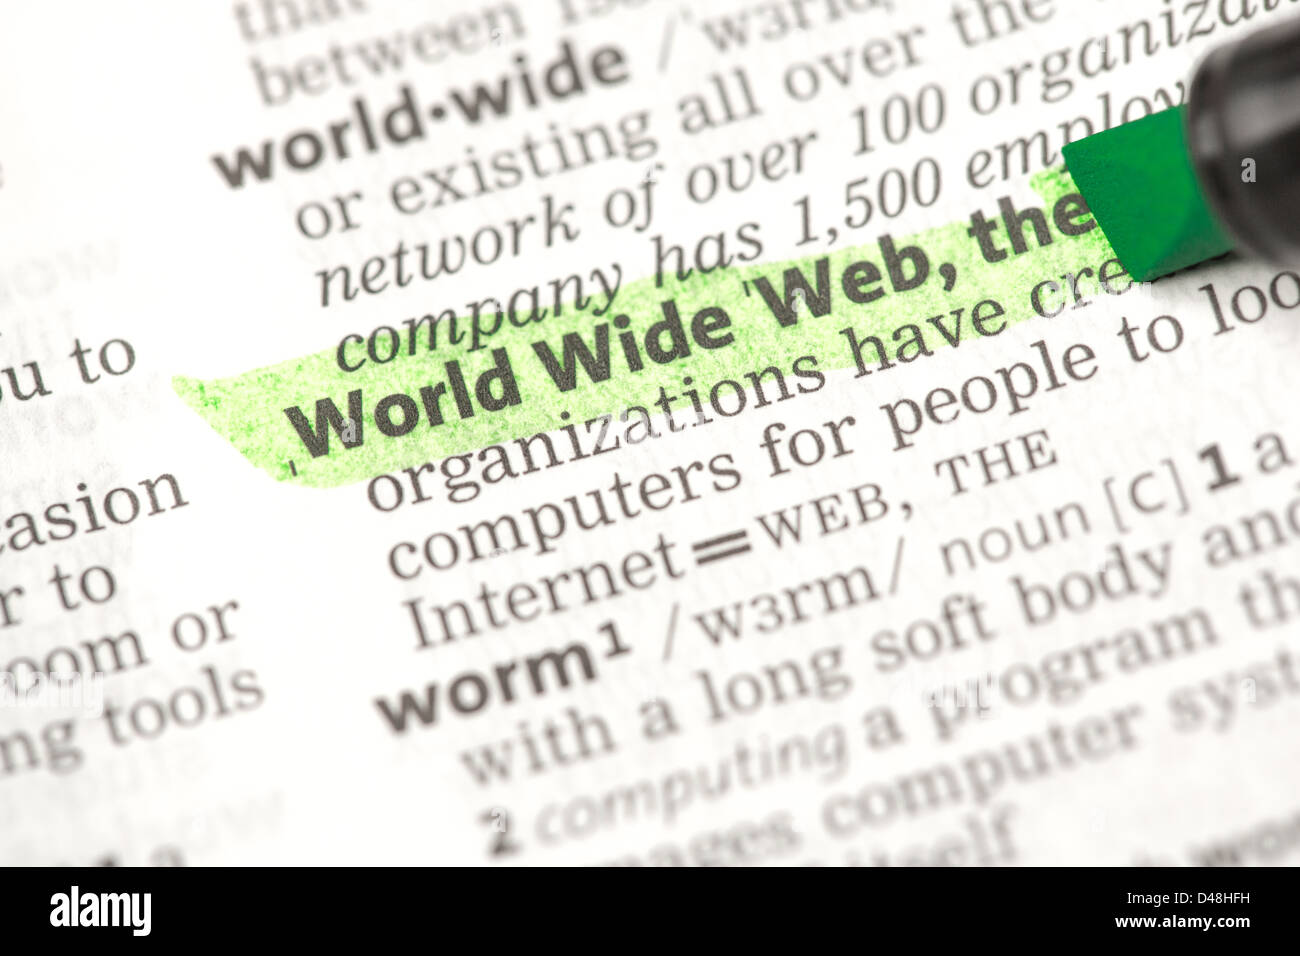 World Wide Web definition highlighted in green - Stock Image